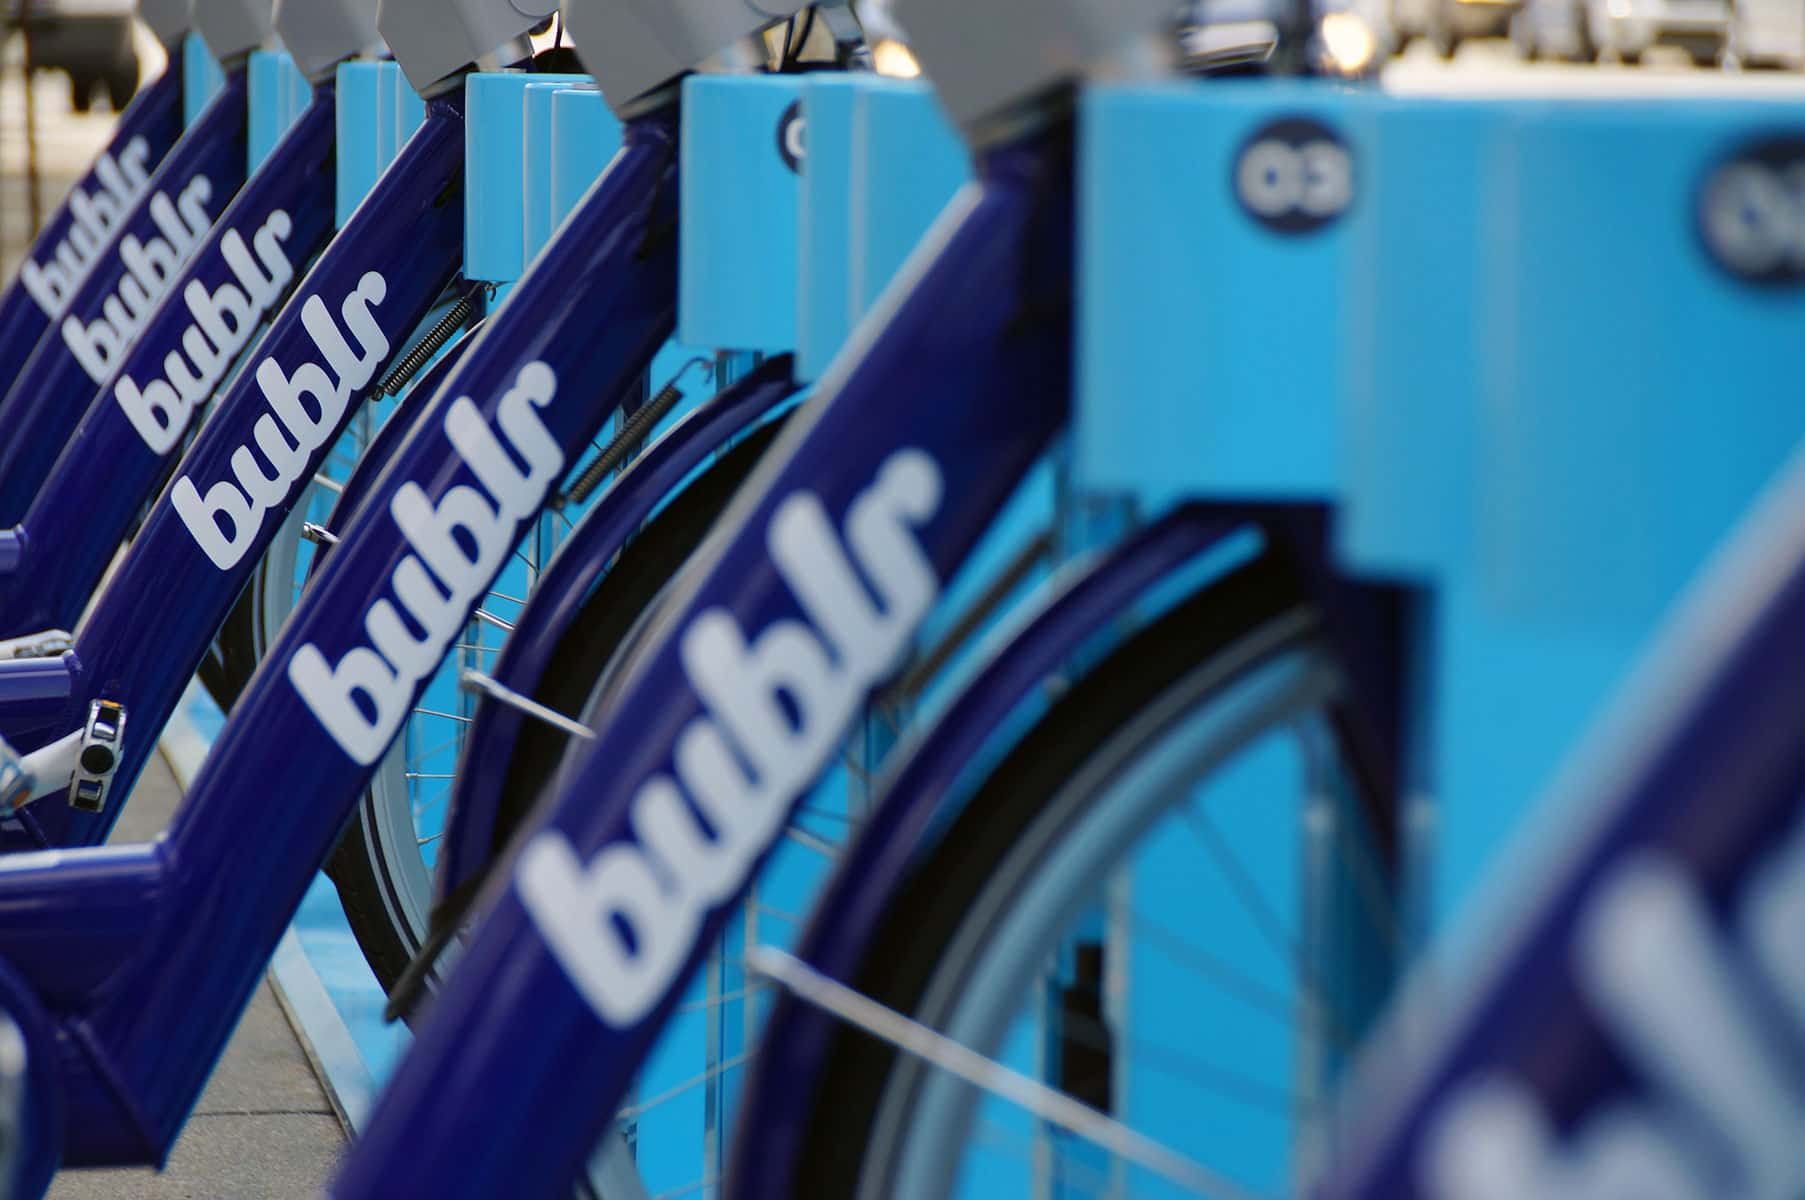 Bublr Bikes Is Opening A New Bike Share Station Next Week Located In Zillman Park On The Southwest Corner Of S Kinnickinnic And E Ward Bay View